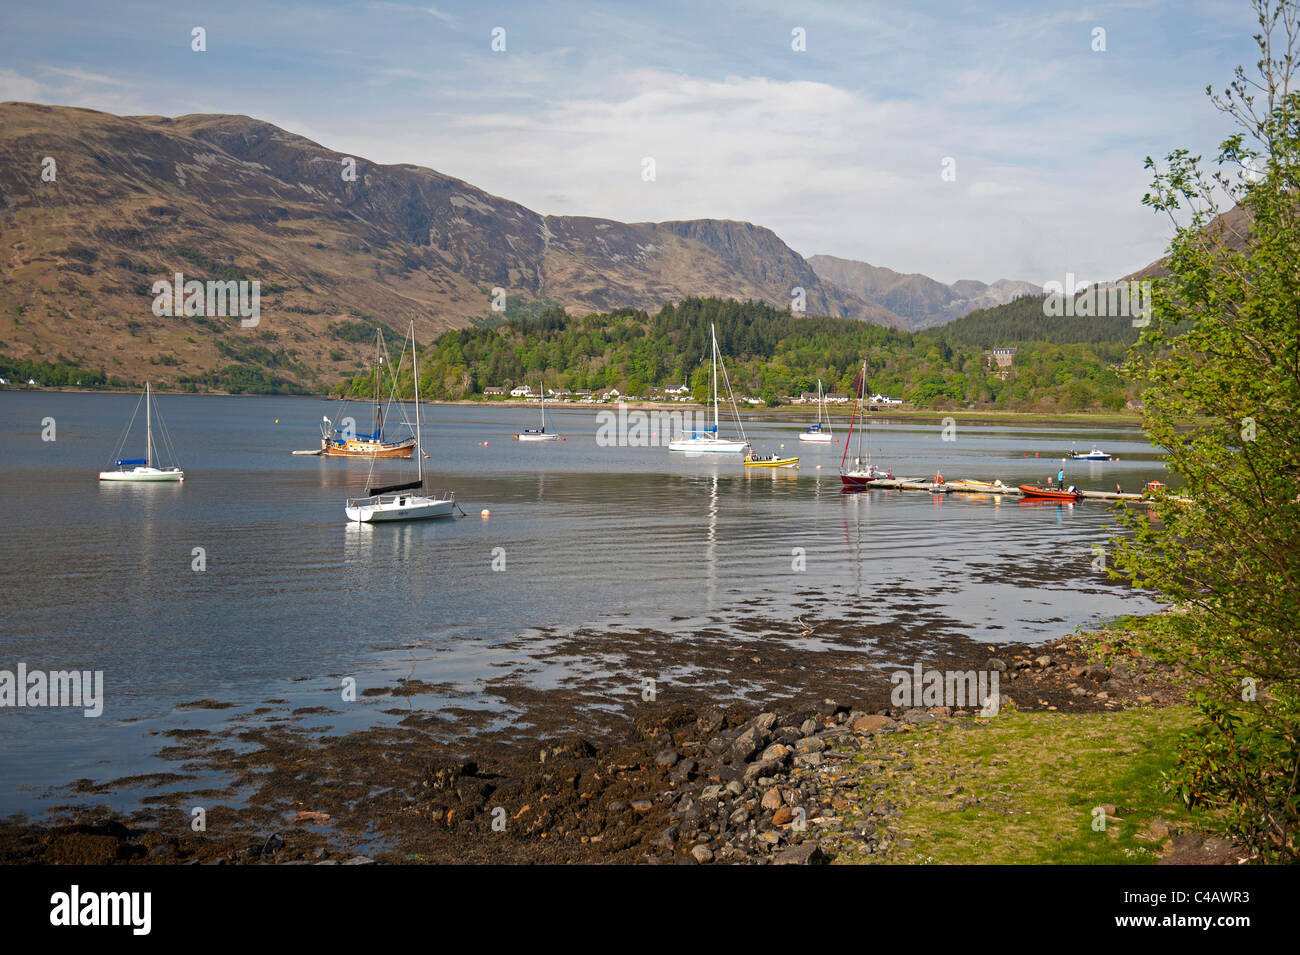 Yacht moorings at Ballachuilish, Loch Leven,  Glencoe, Highland Region Scotland. SCO 7132 - Stock Image